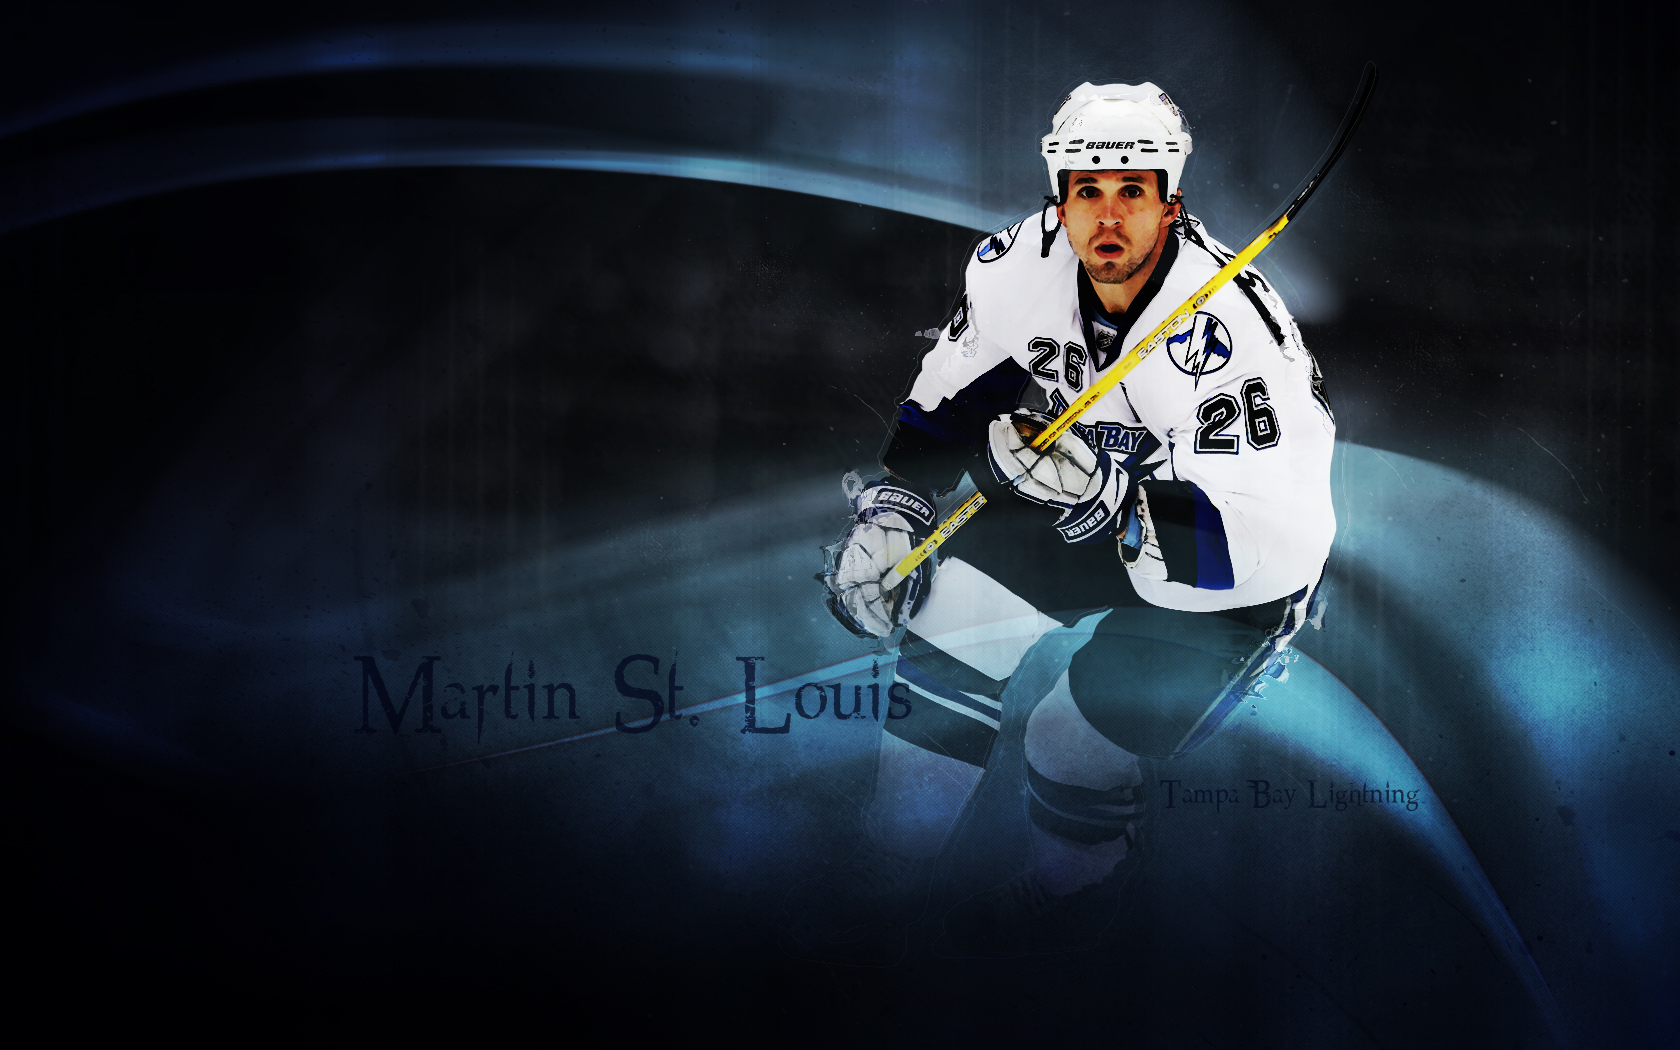 wwwdesktopascommartin st louis tampa bay lightning wallpaperhtml 1680x1050